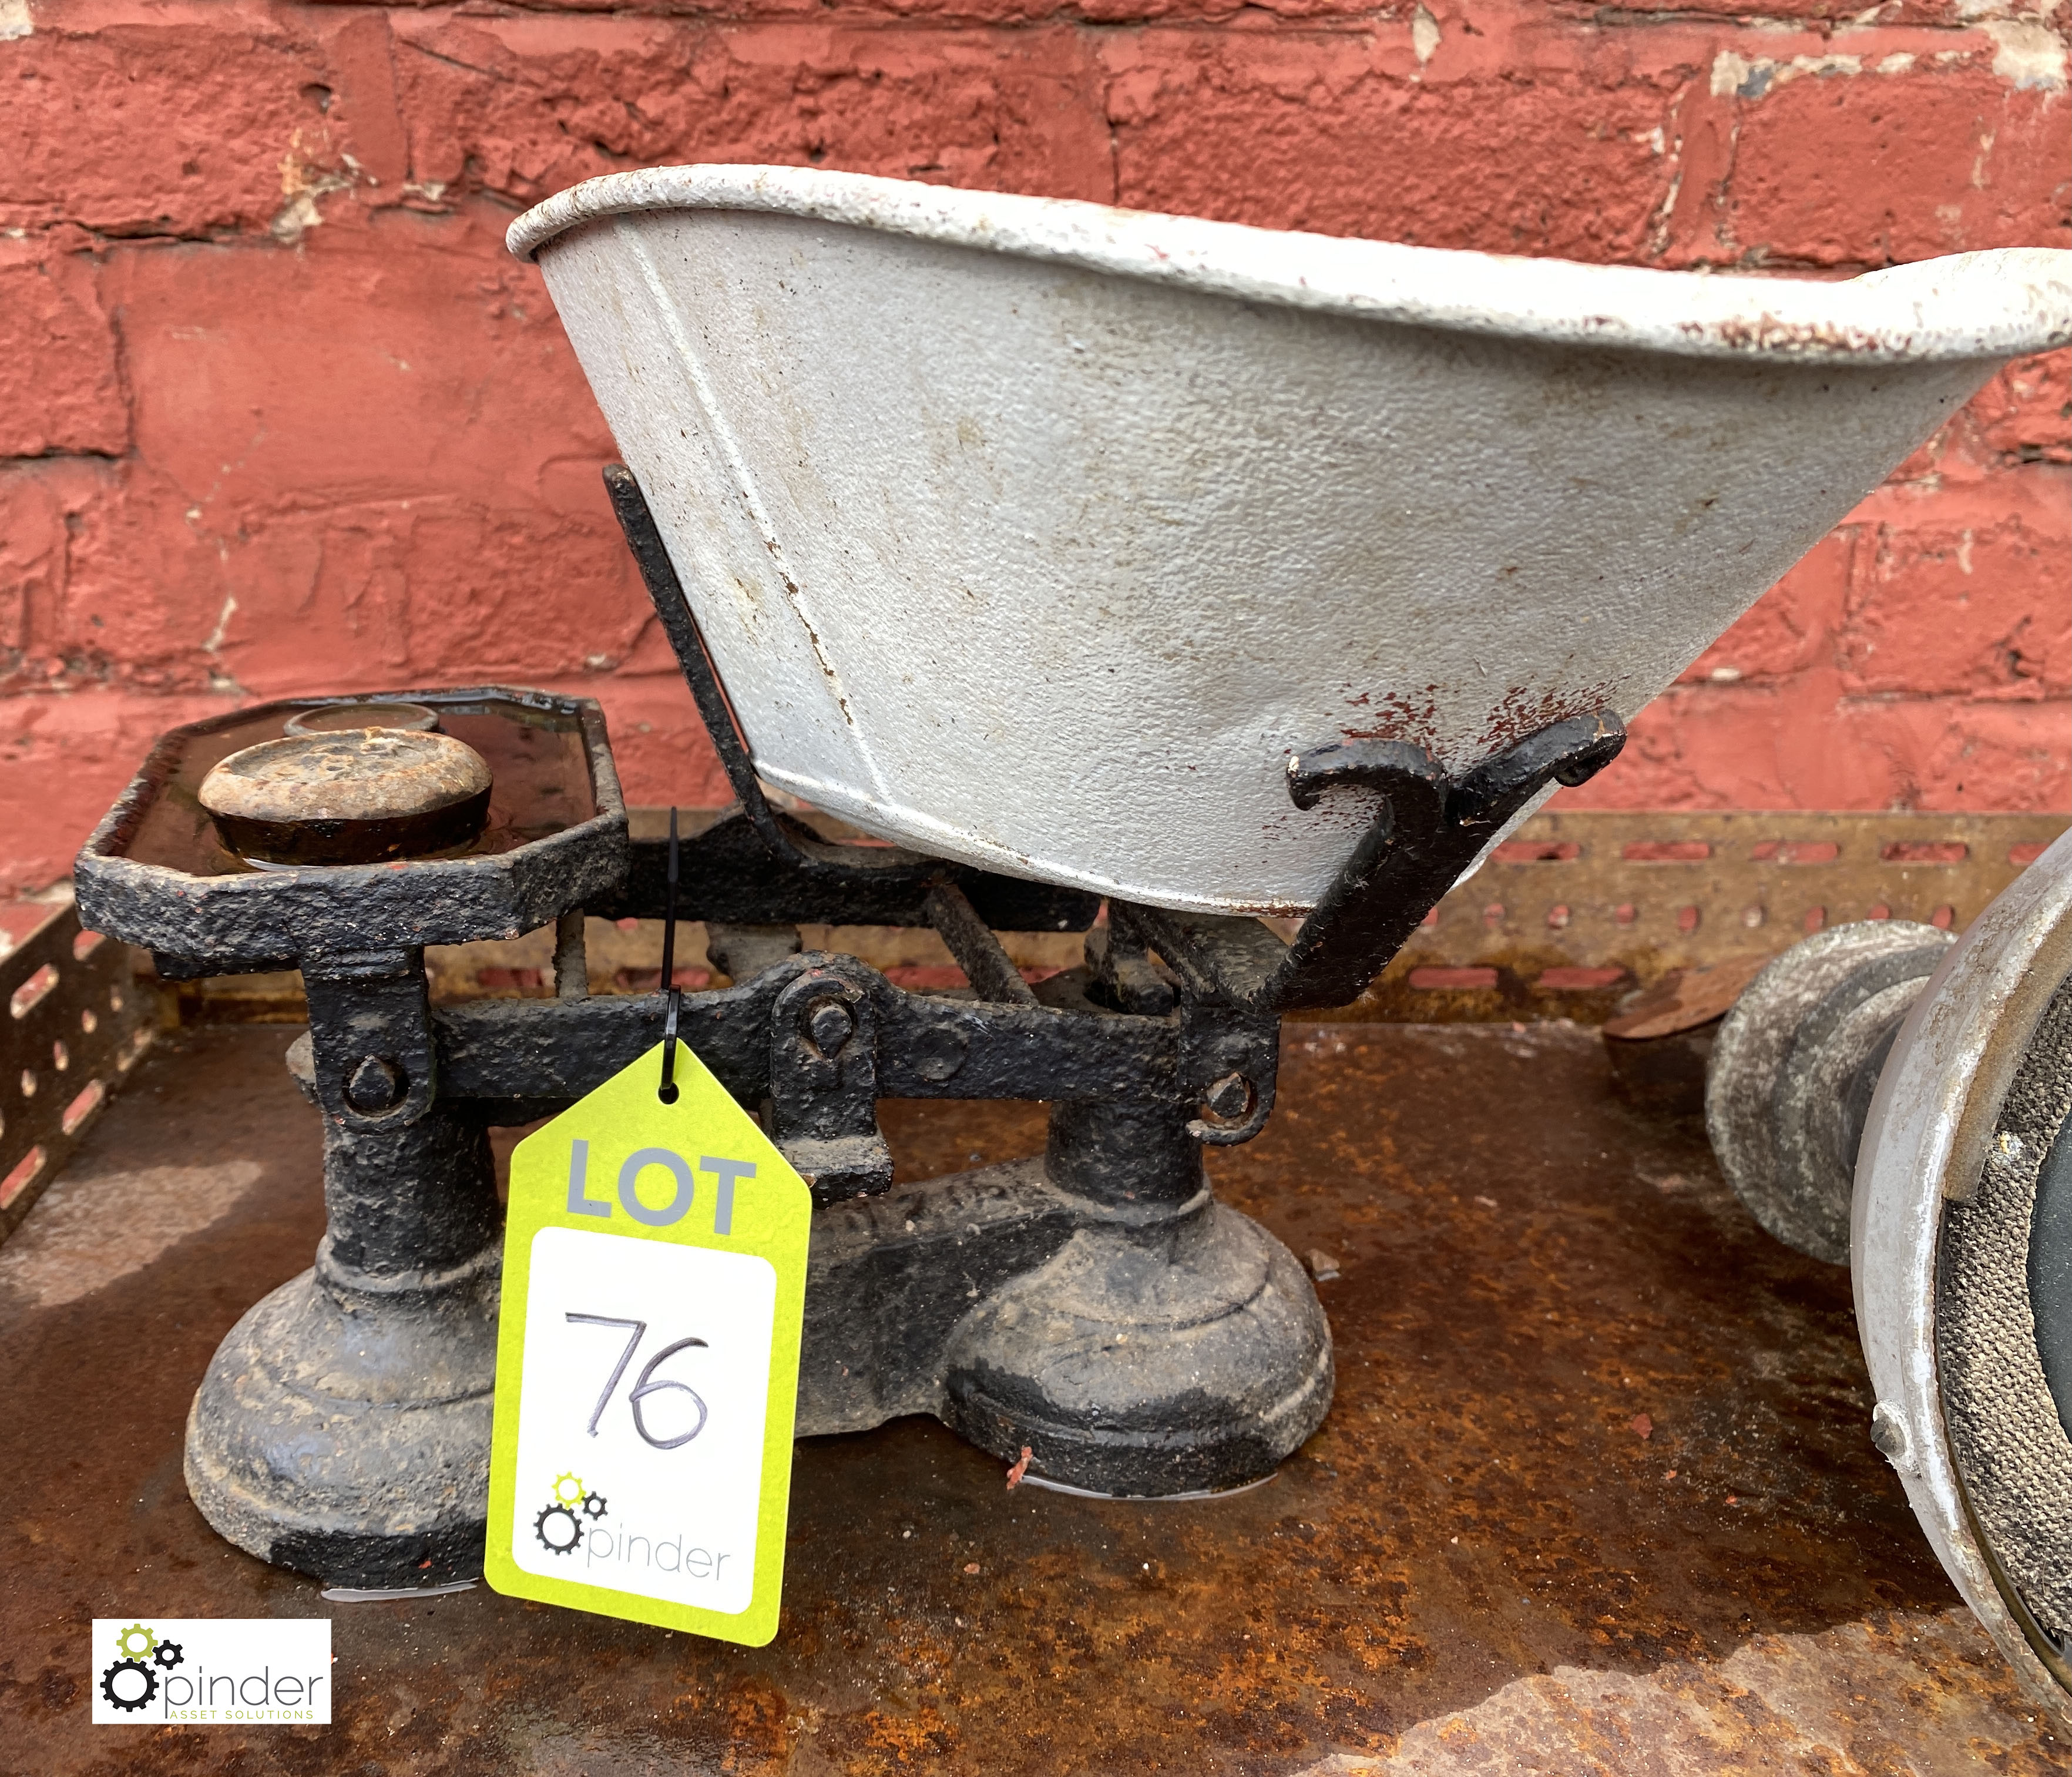 Cast iron counter top counterbalance Weighing Scales, 7lbs, with quantity various weights (LOCATION: